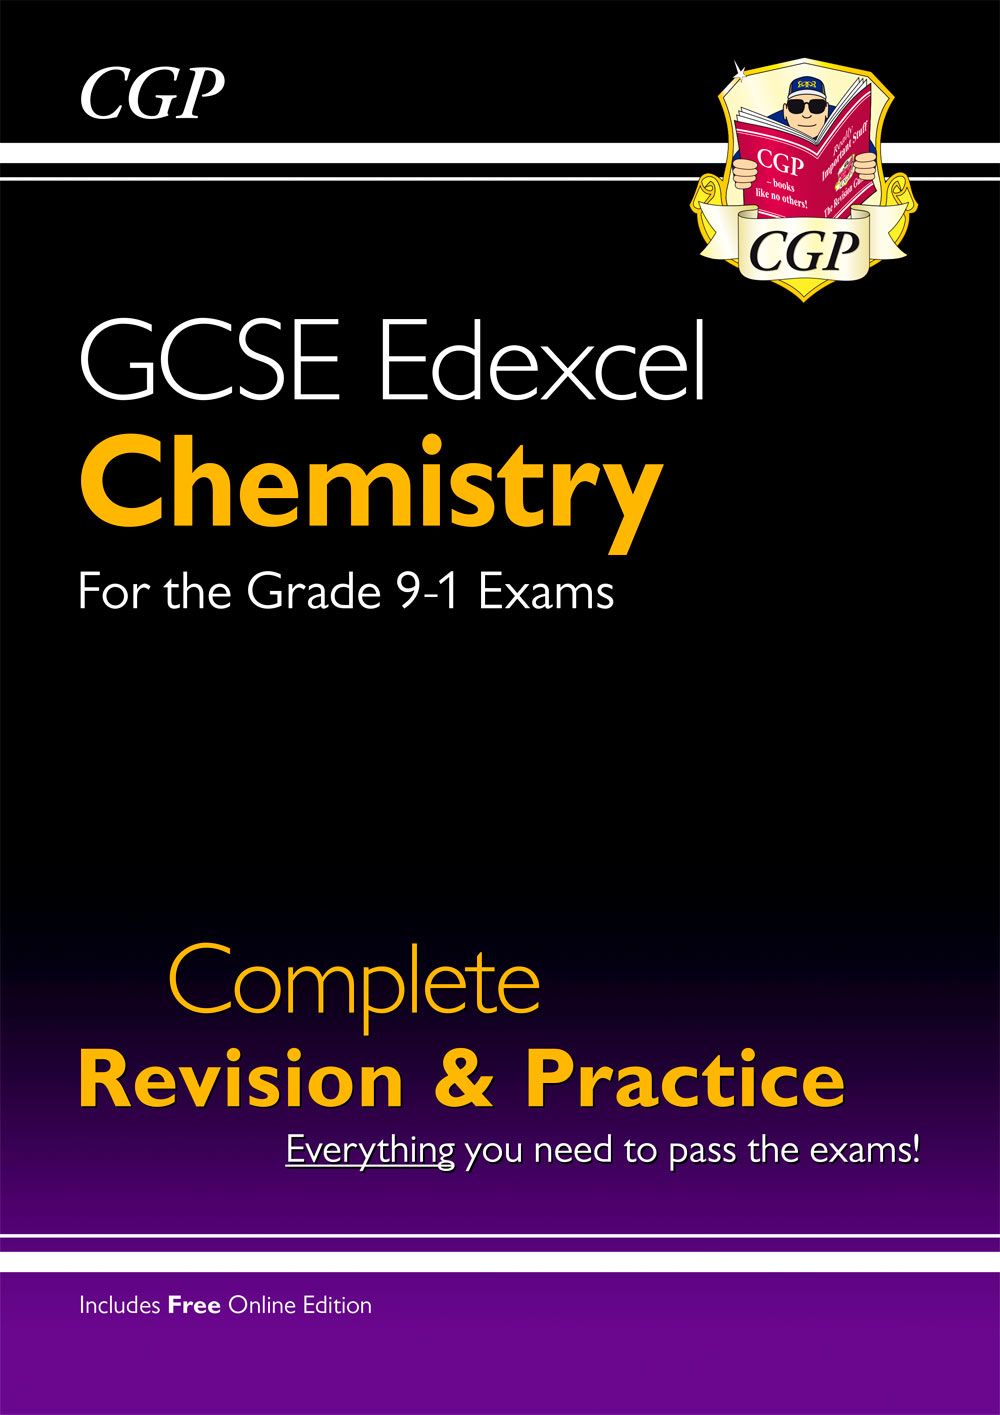 CES41 - New Grade 9-1 GCSE Chemistry Edexcel Complete Revision & Practice with Online Edition